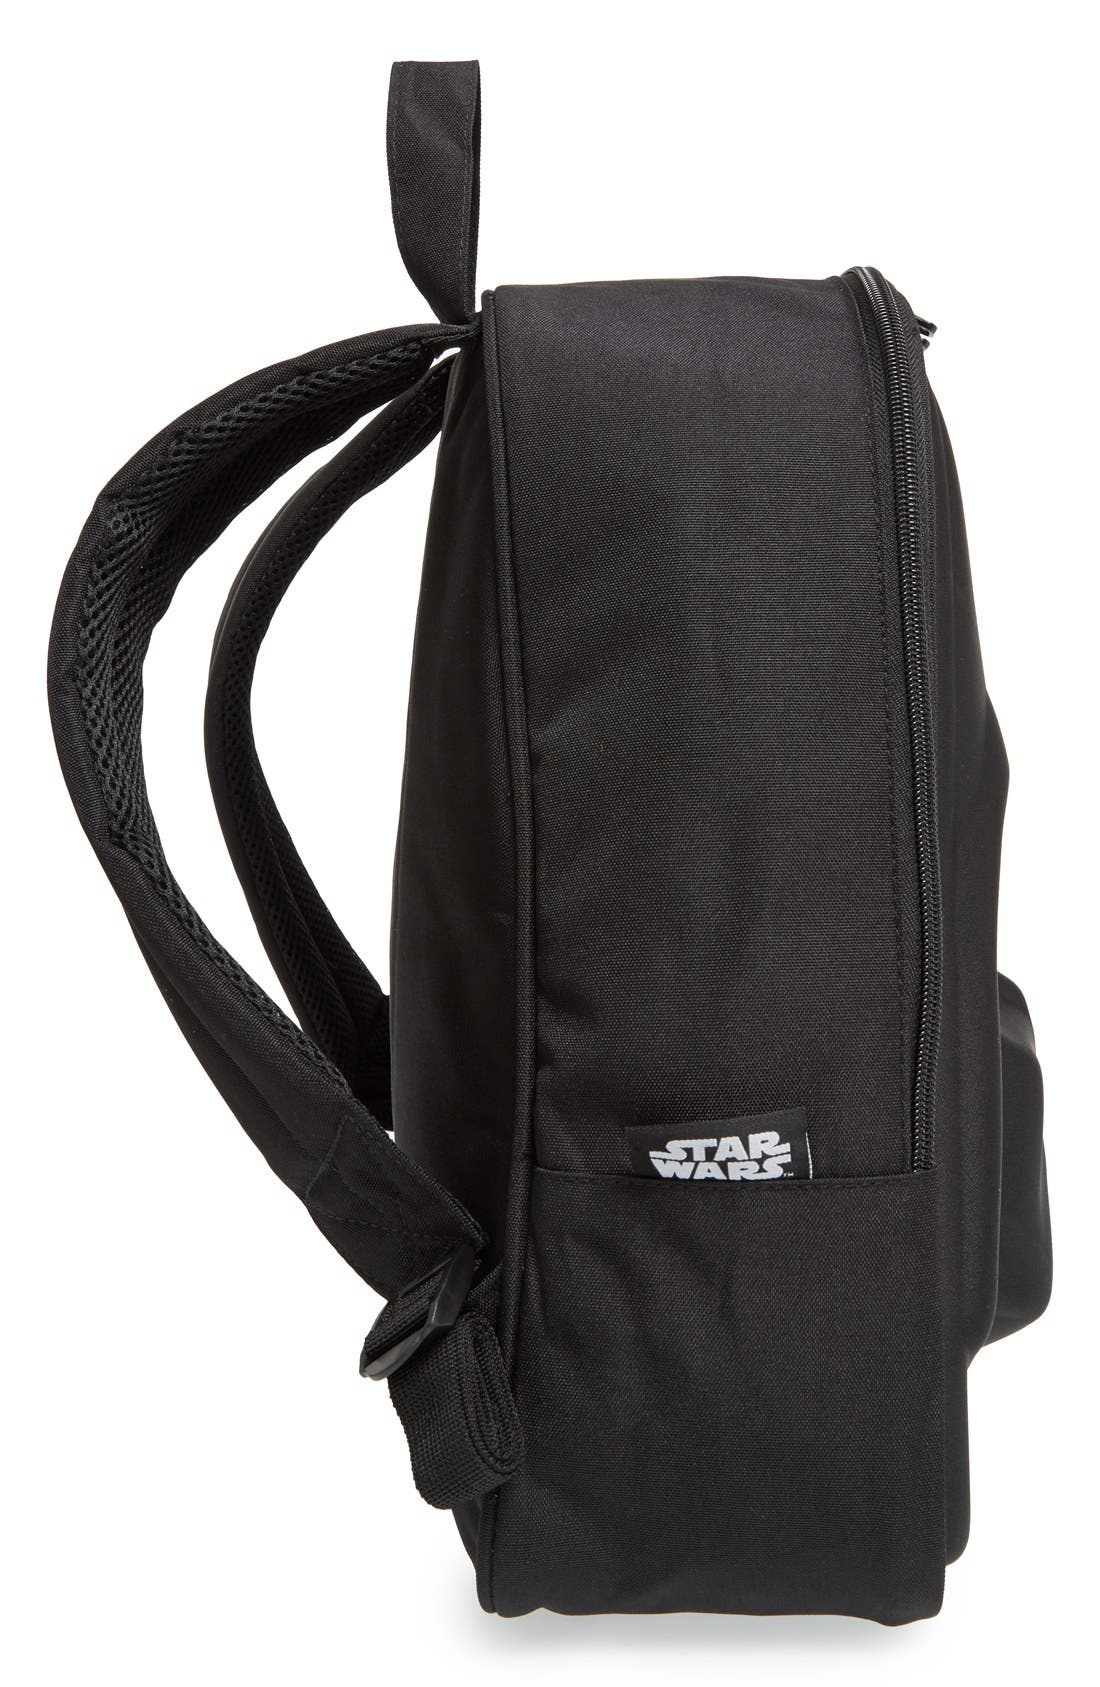 'Star Wars<sup>™</sup> - Darth Vader' Backpack,                             Alternate thumbnail 3, color,                             Black